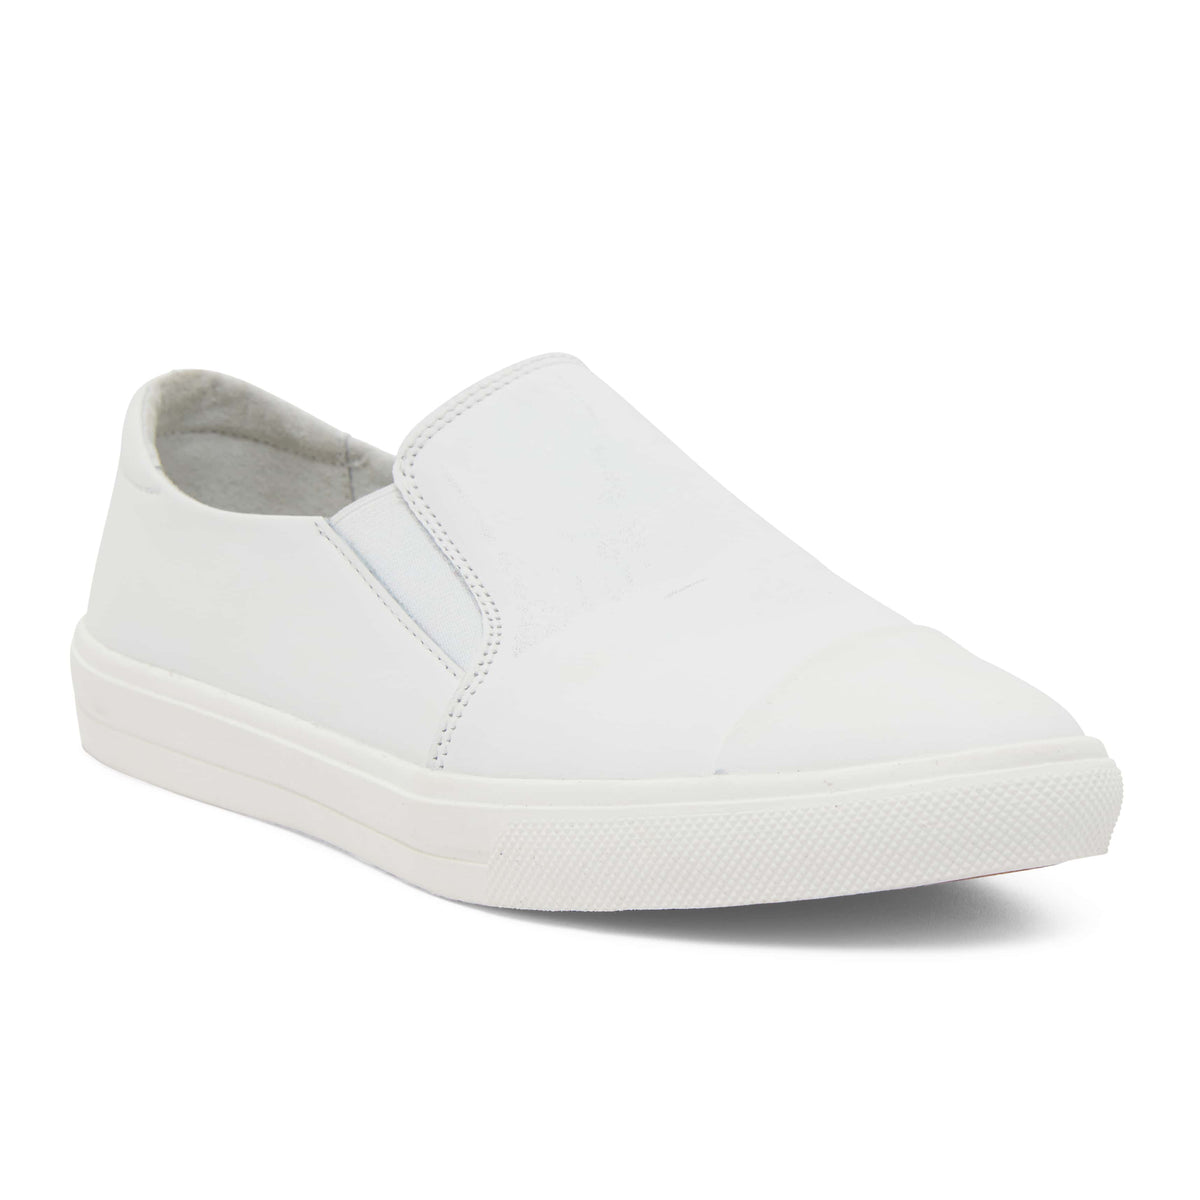 Tandem Sneaker in White Leather